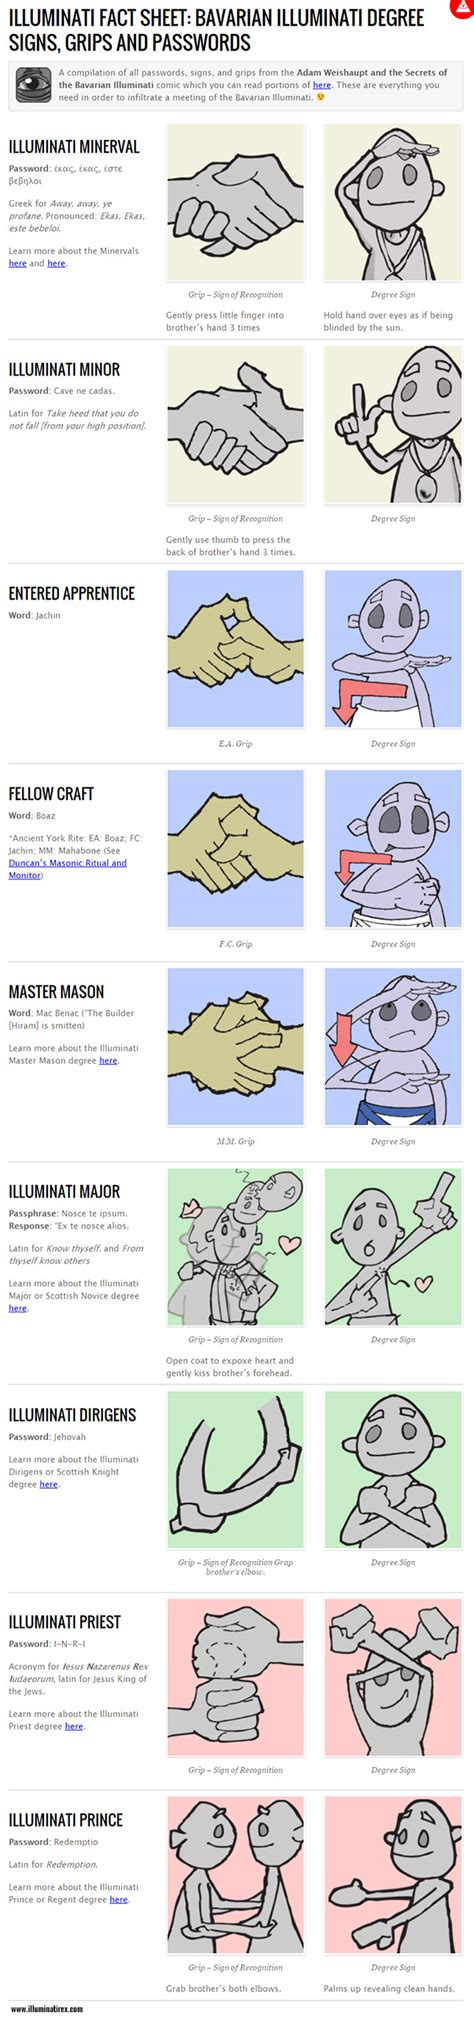 illuminati signs with bavarian illuminati secret handshakes and signs